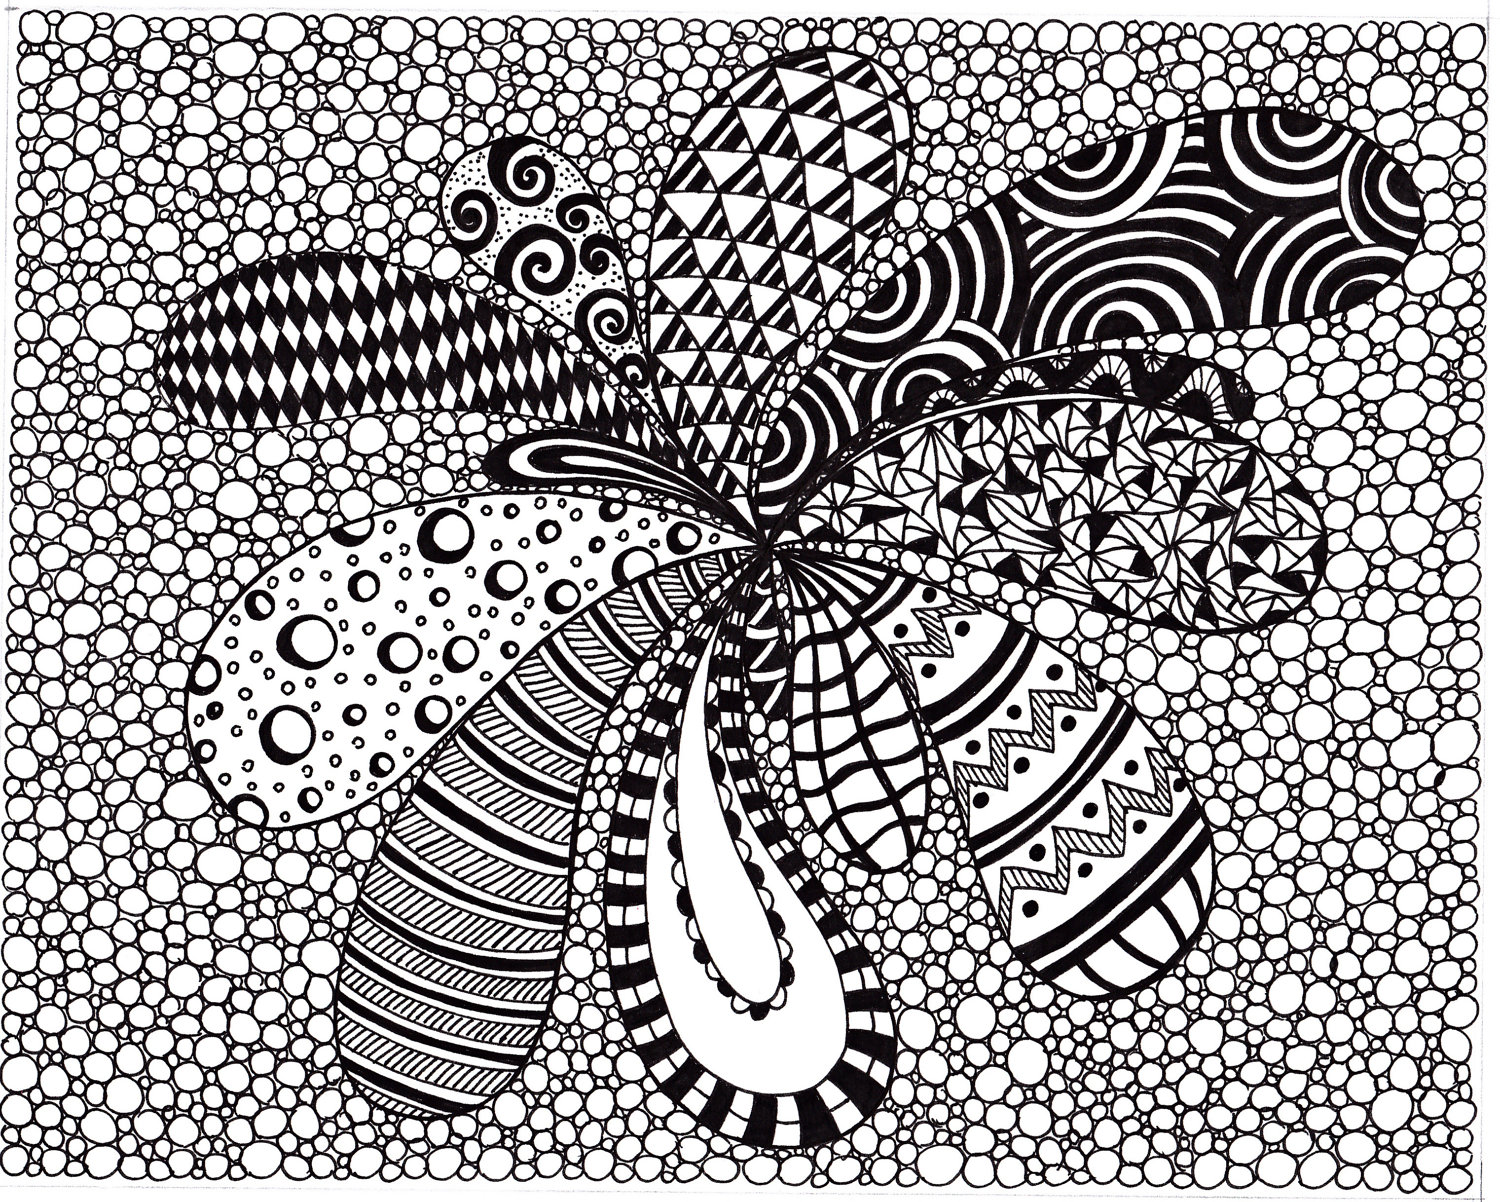 Black And White Abstract Drawings 20 Wide Wallpaper Hdblackwallpaper Com